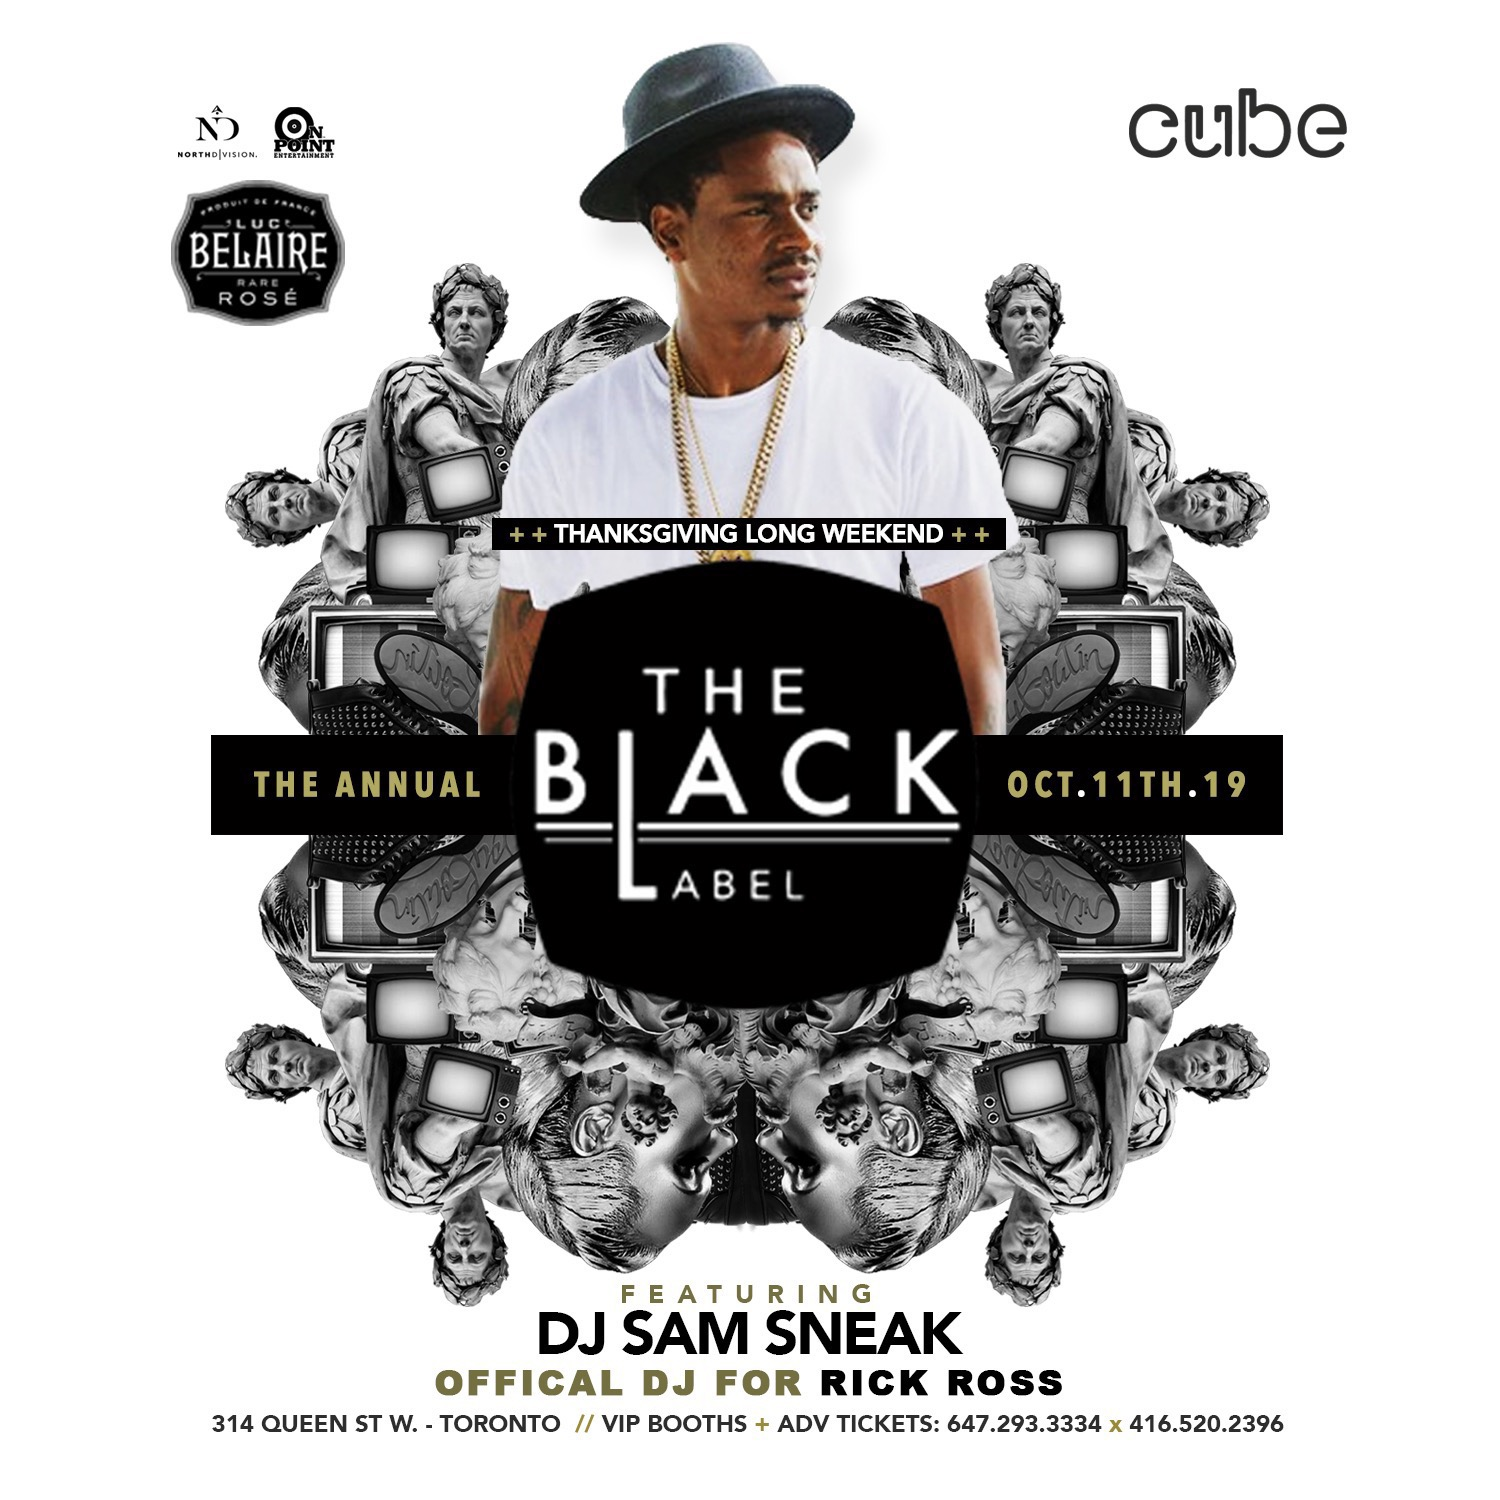 The Black Label - Thanksgiving Long weekend - Hosted by Rick Ross DJ